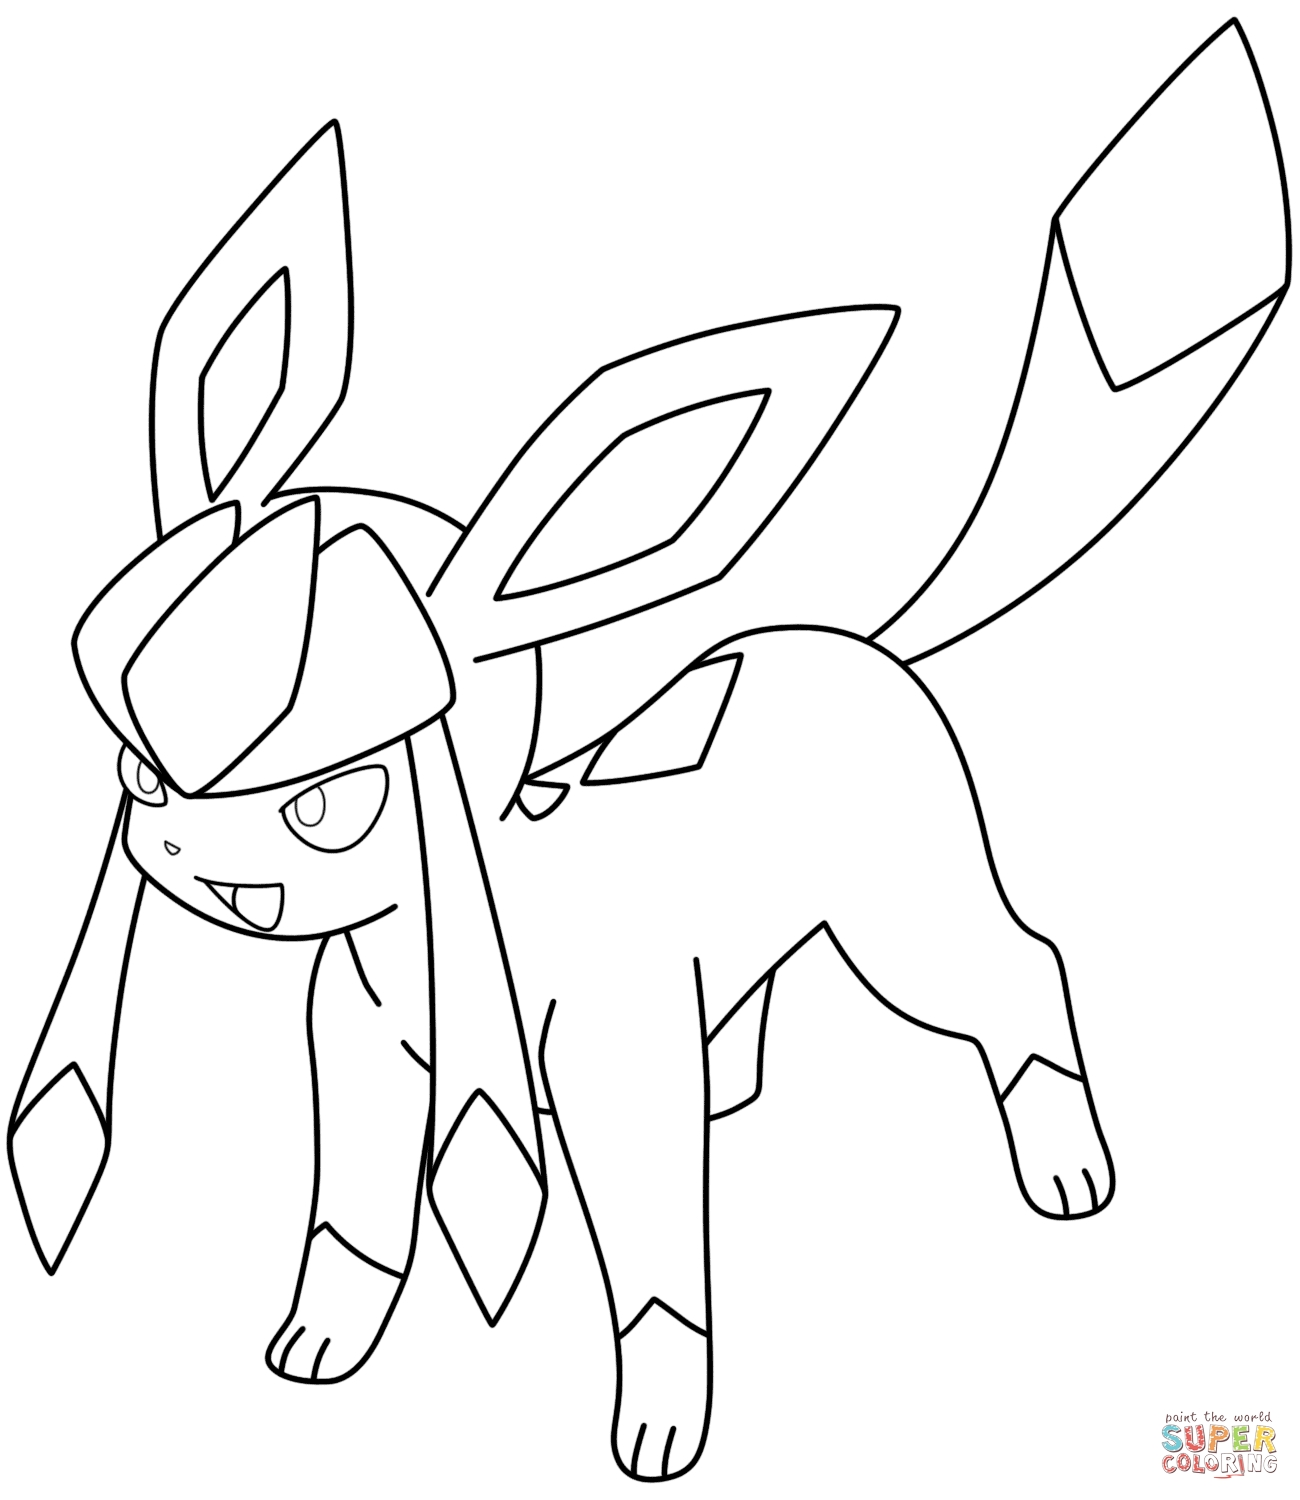 Eevee Coloring Pages at GetDrawings.com | Free for personal ...